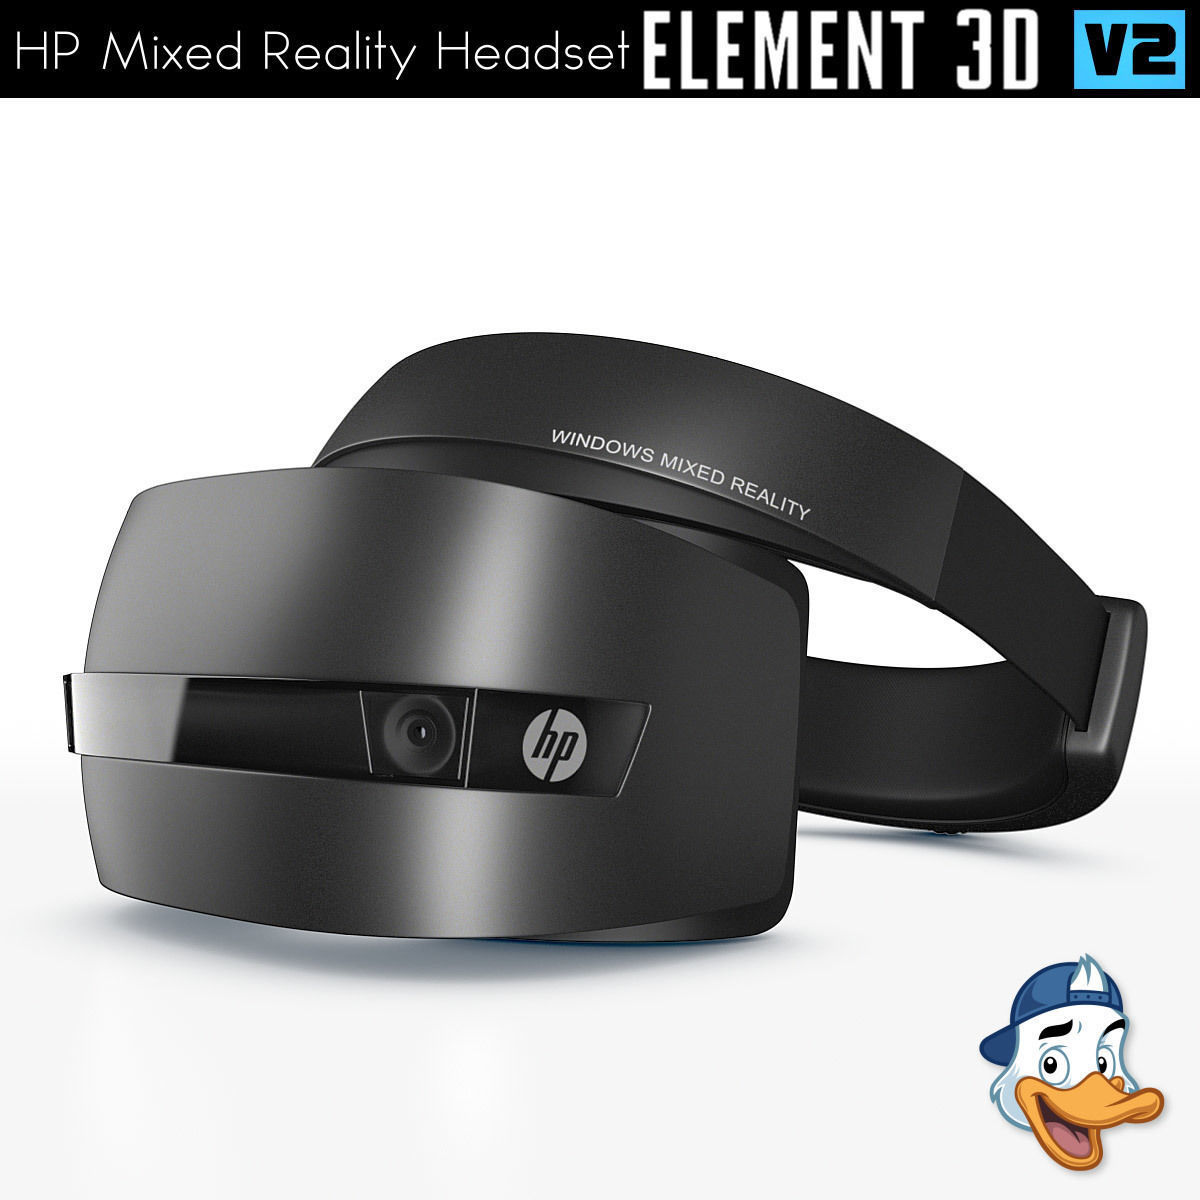 HP Windows Mixed Reality Headset for Element 3D   3D model